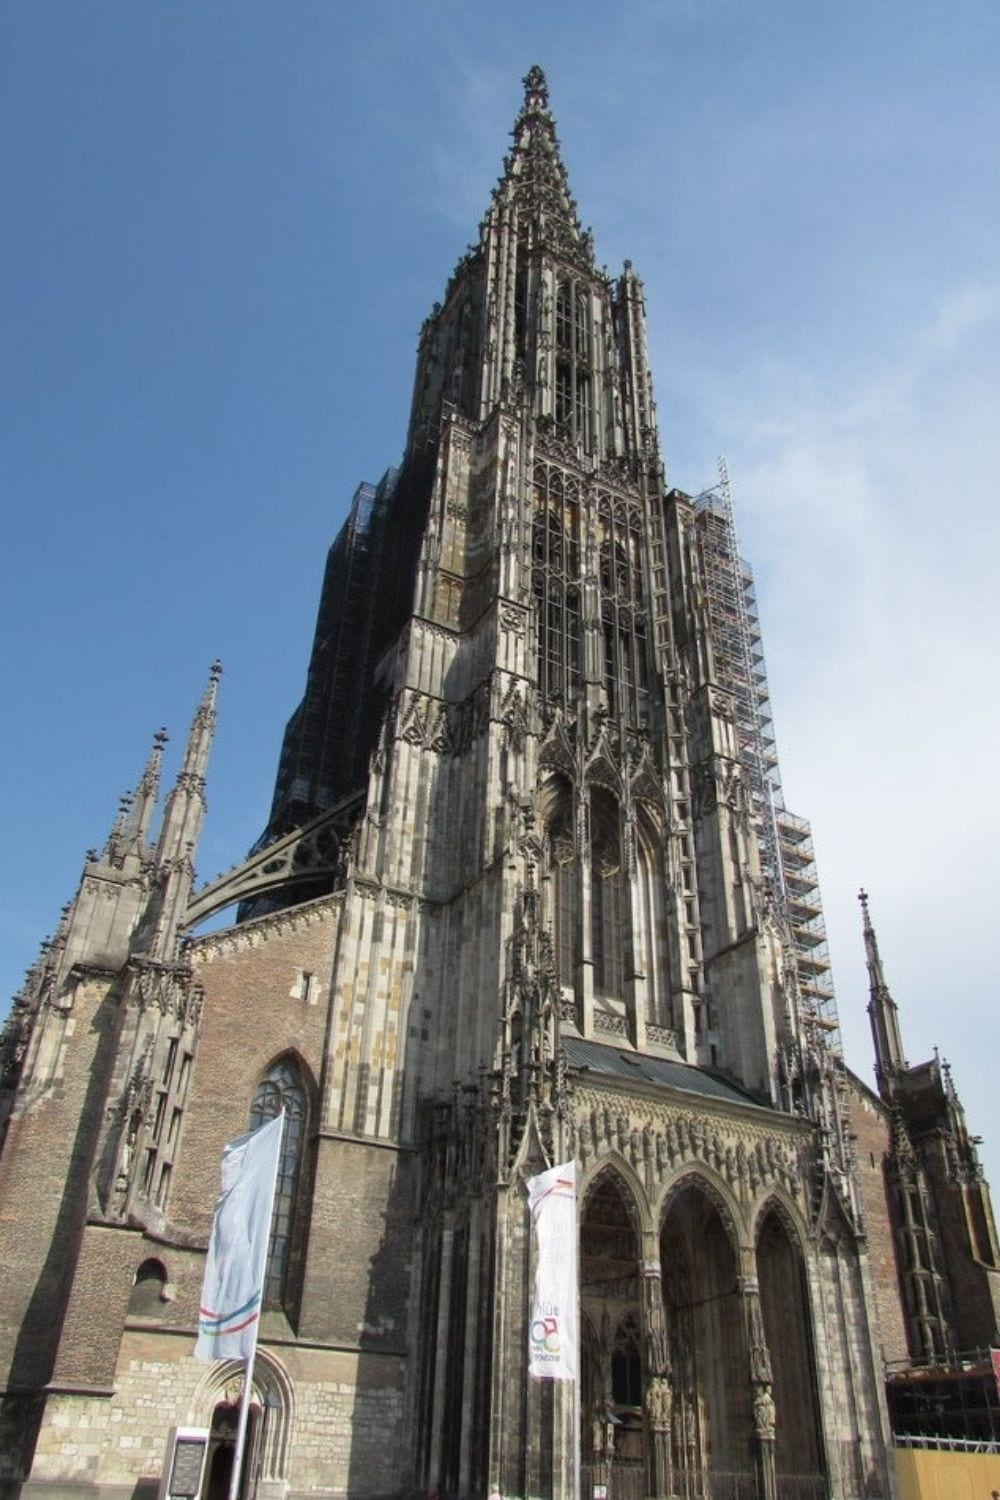 The magnificent Ulm Minster. A central focal point and must see when visiting Ulm, Germany.